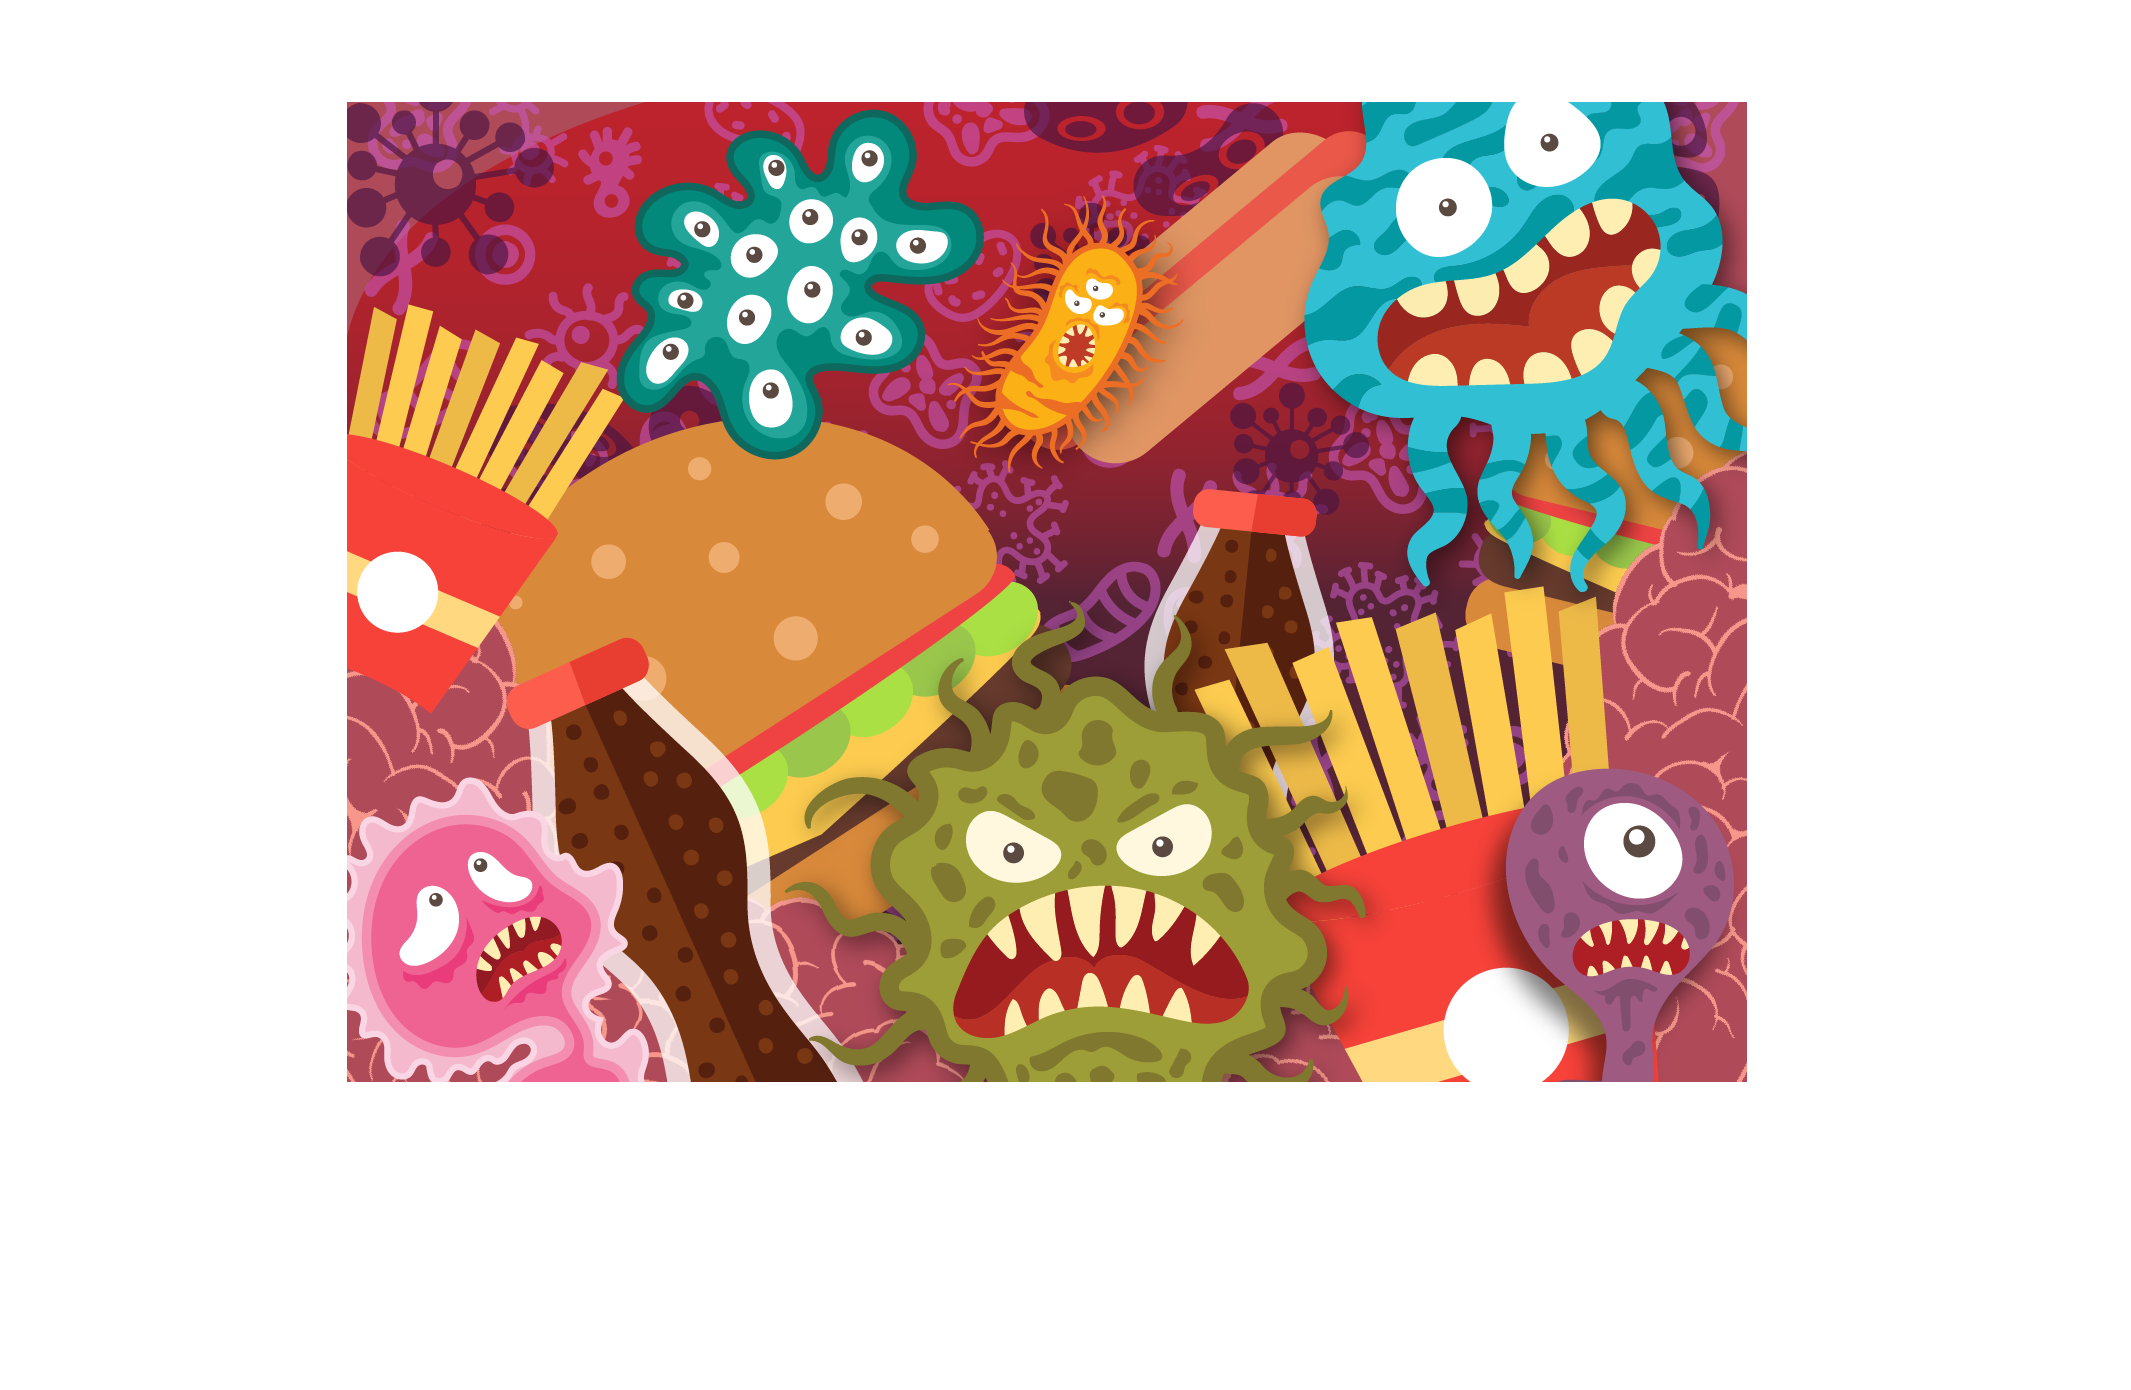 gut-party-BAD (1).png